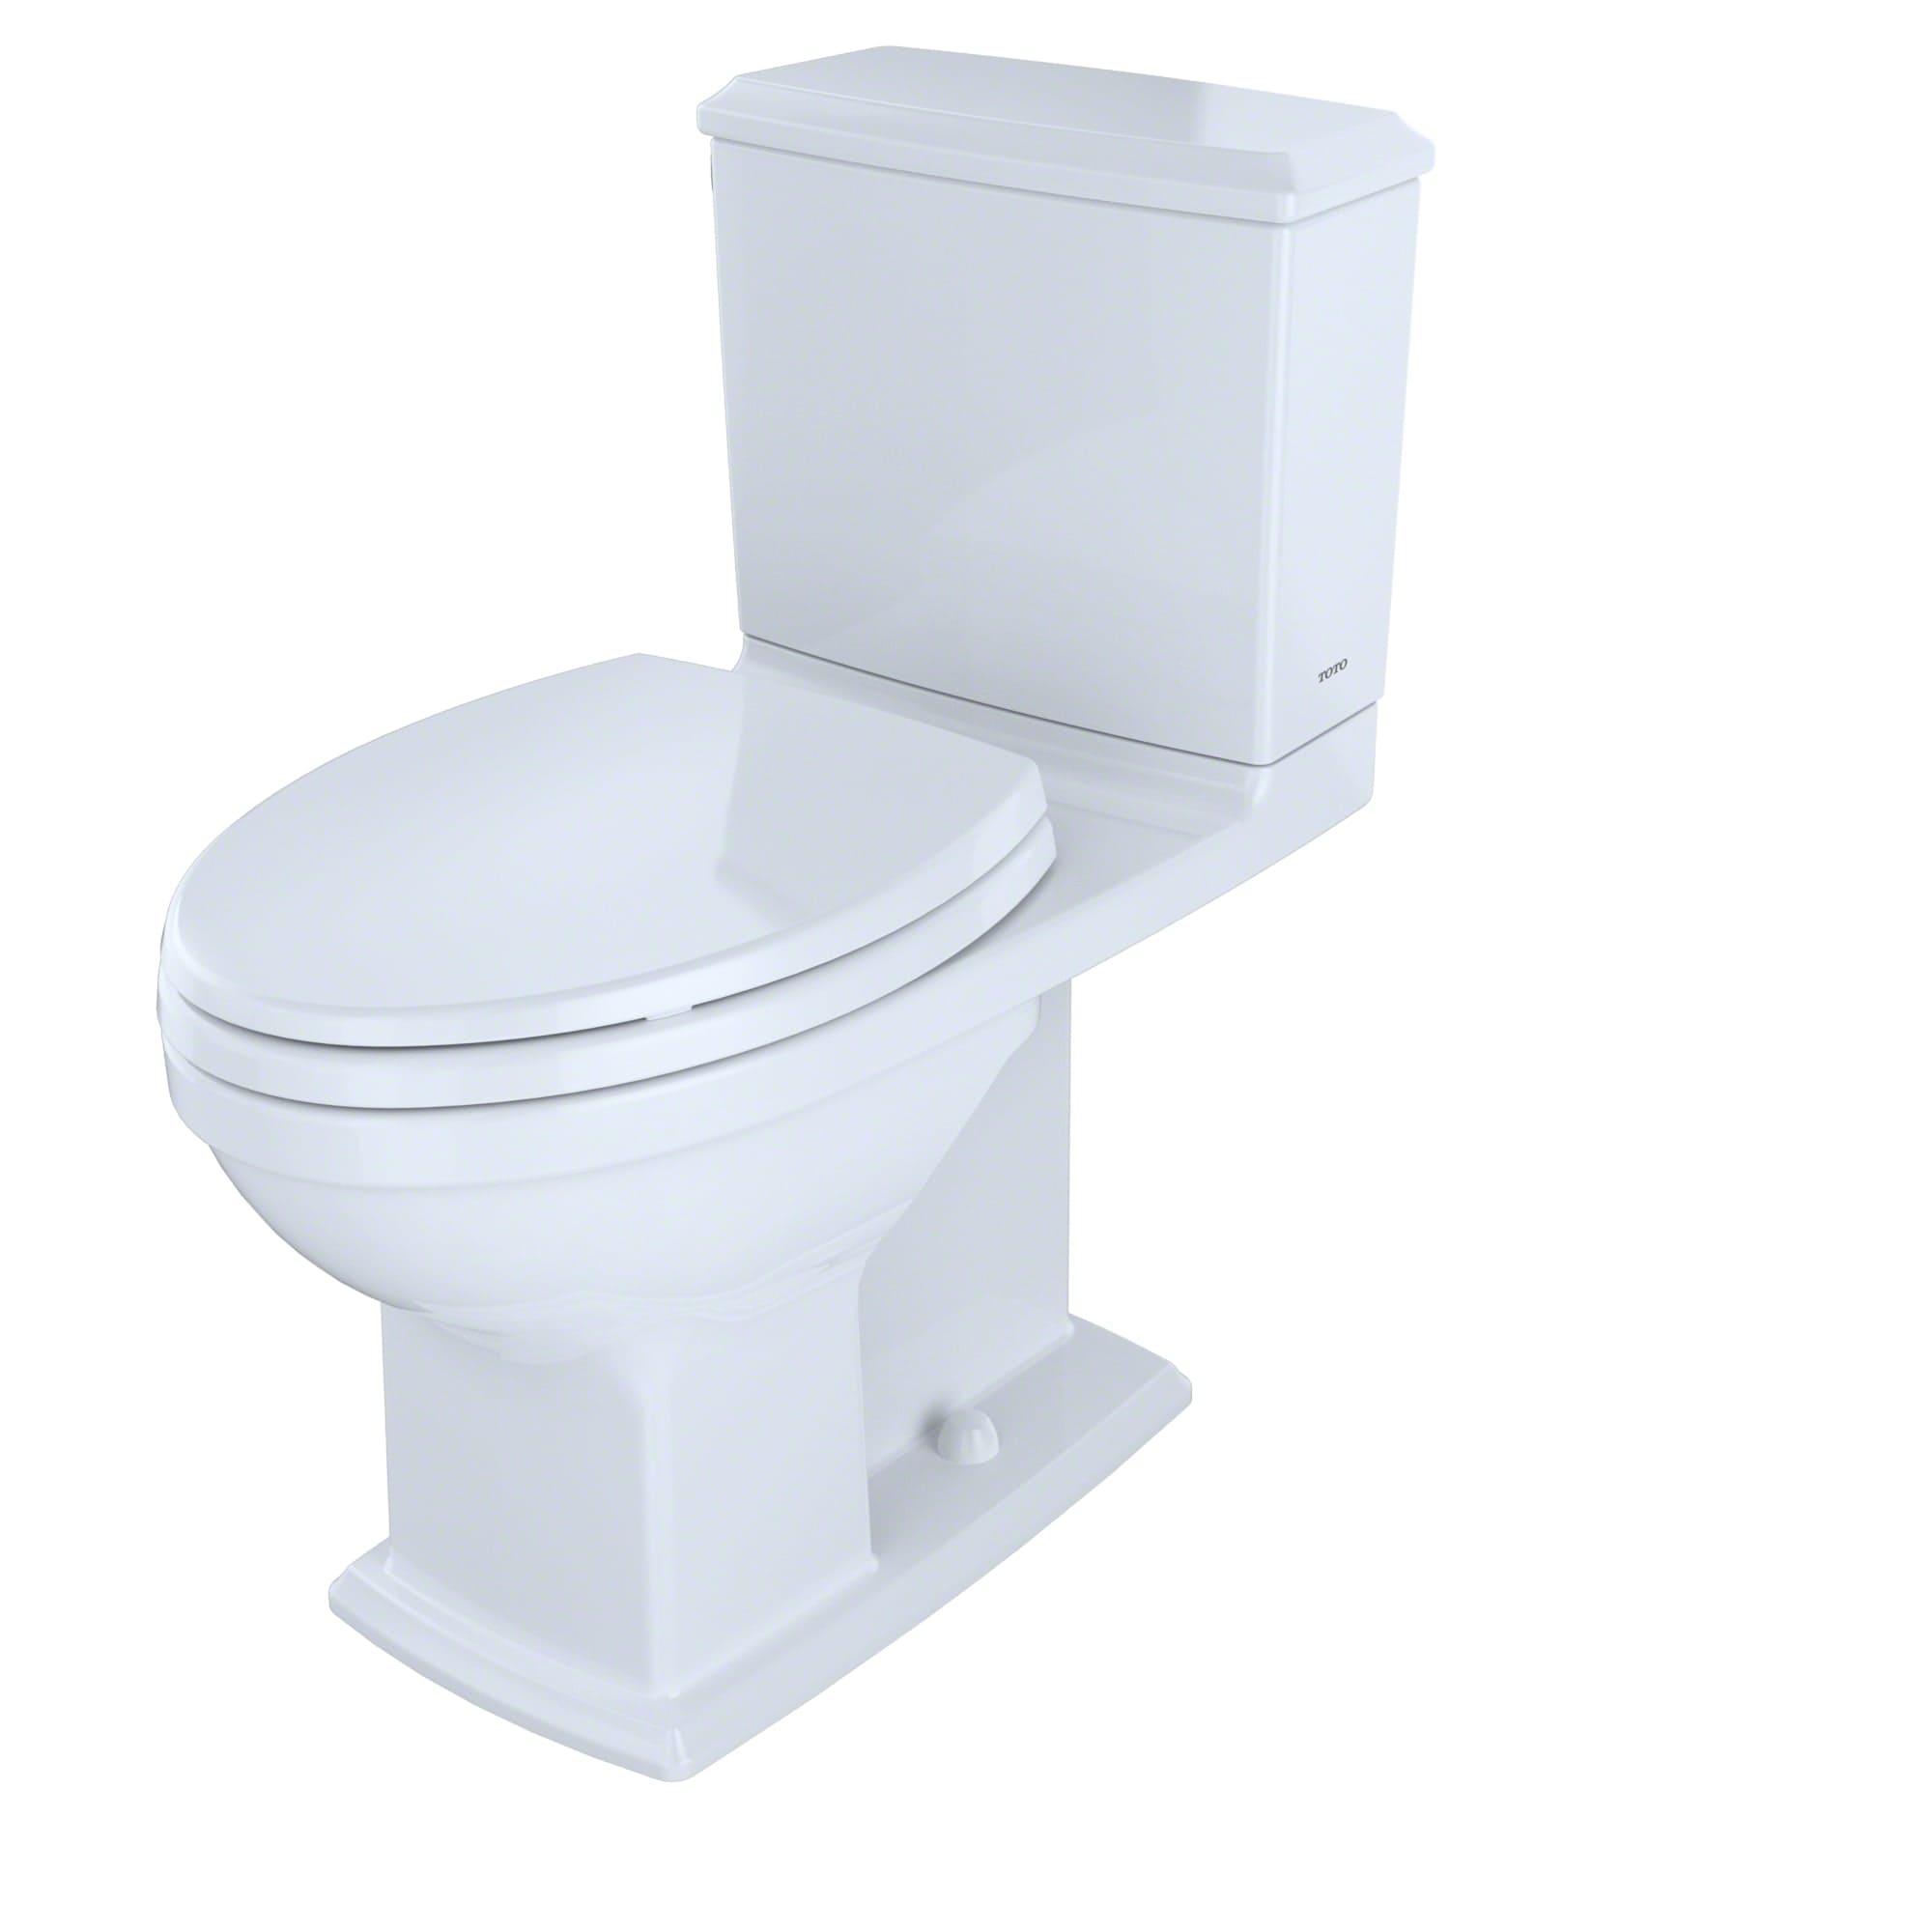 Toto Cst494cemfg 01 Cotton Connelly 0 9 1 28 Gpf Two Piece Elongated Toilet With Cefiontect And Ada Height Less Seat Faucetdirect